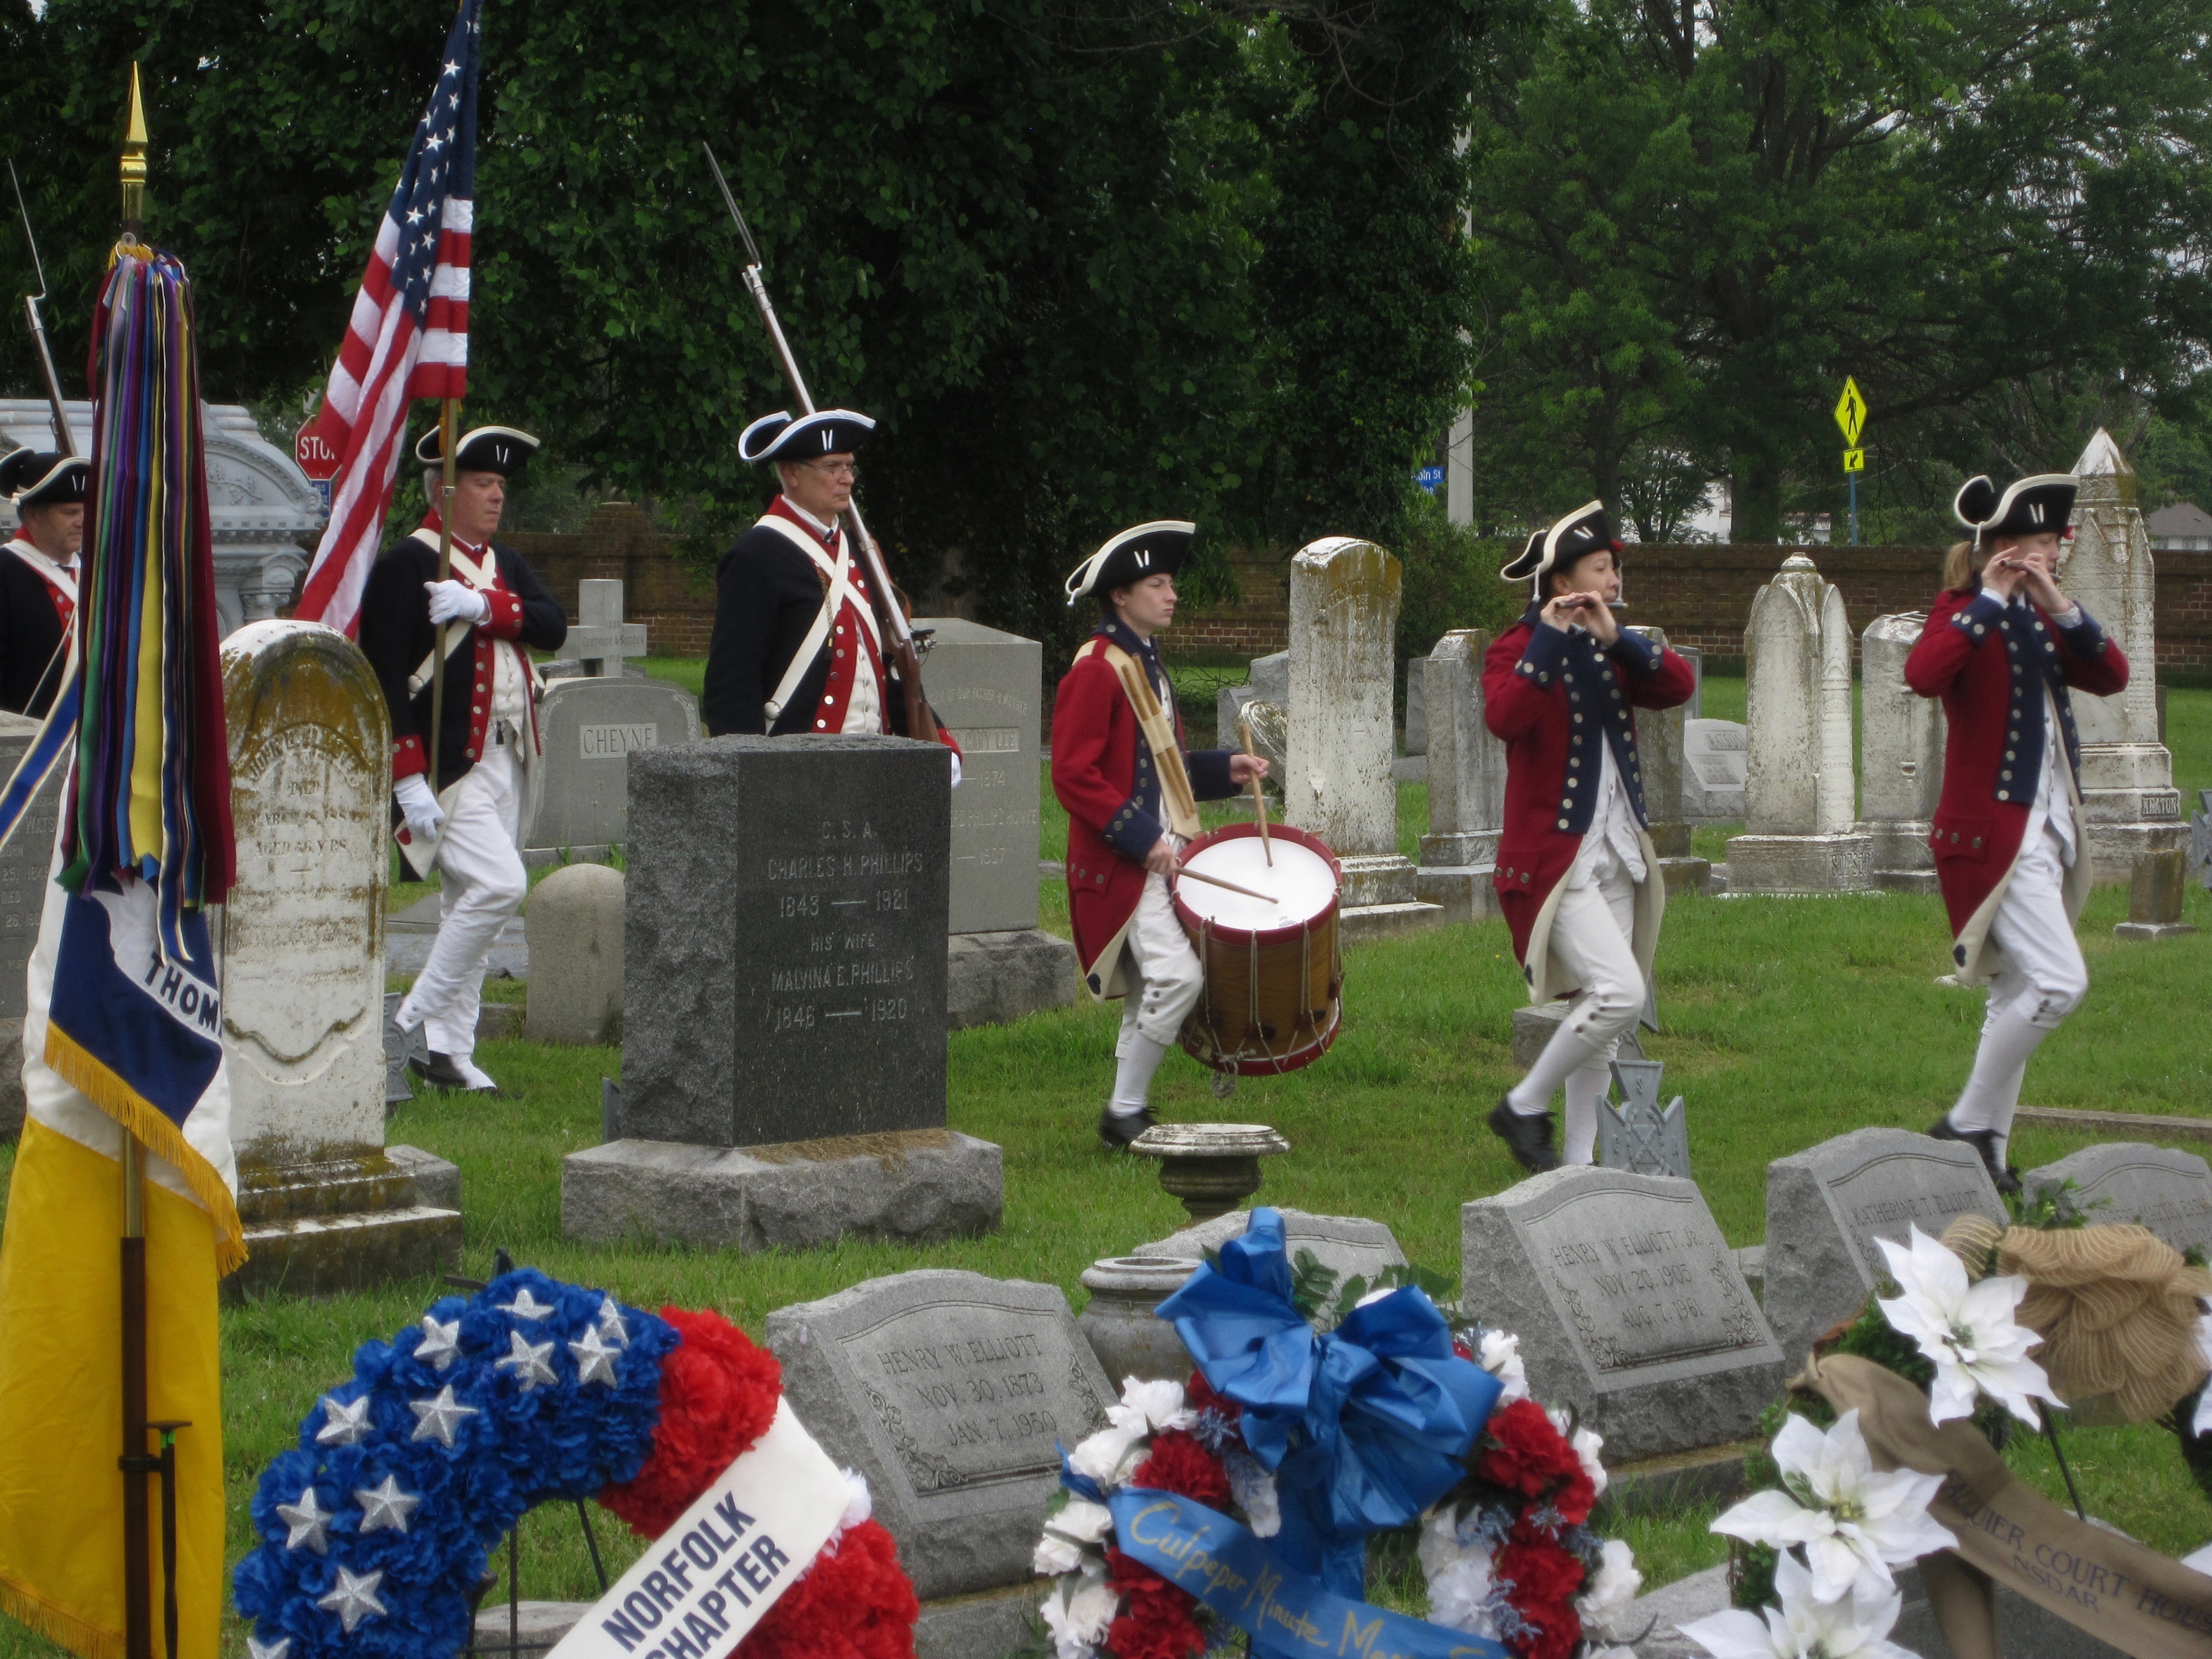 Entrance of the VASSAR Color Guard led by Norfolk Chapter Compatriot Chris Melhuish (Carrying the American Flag)